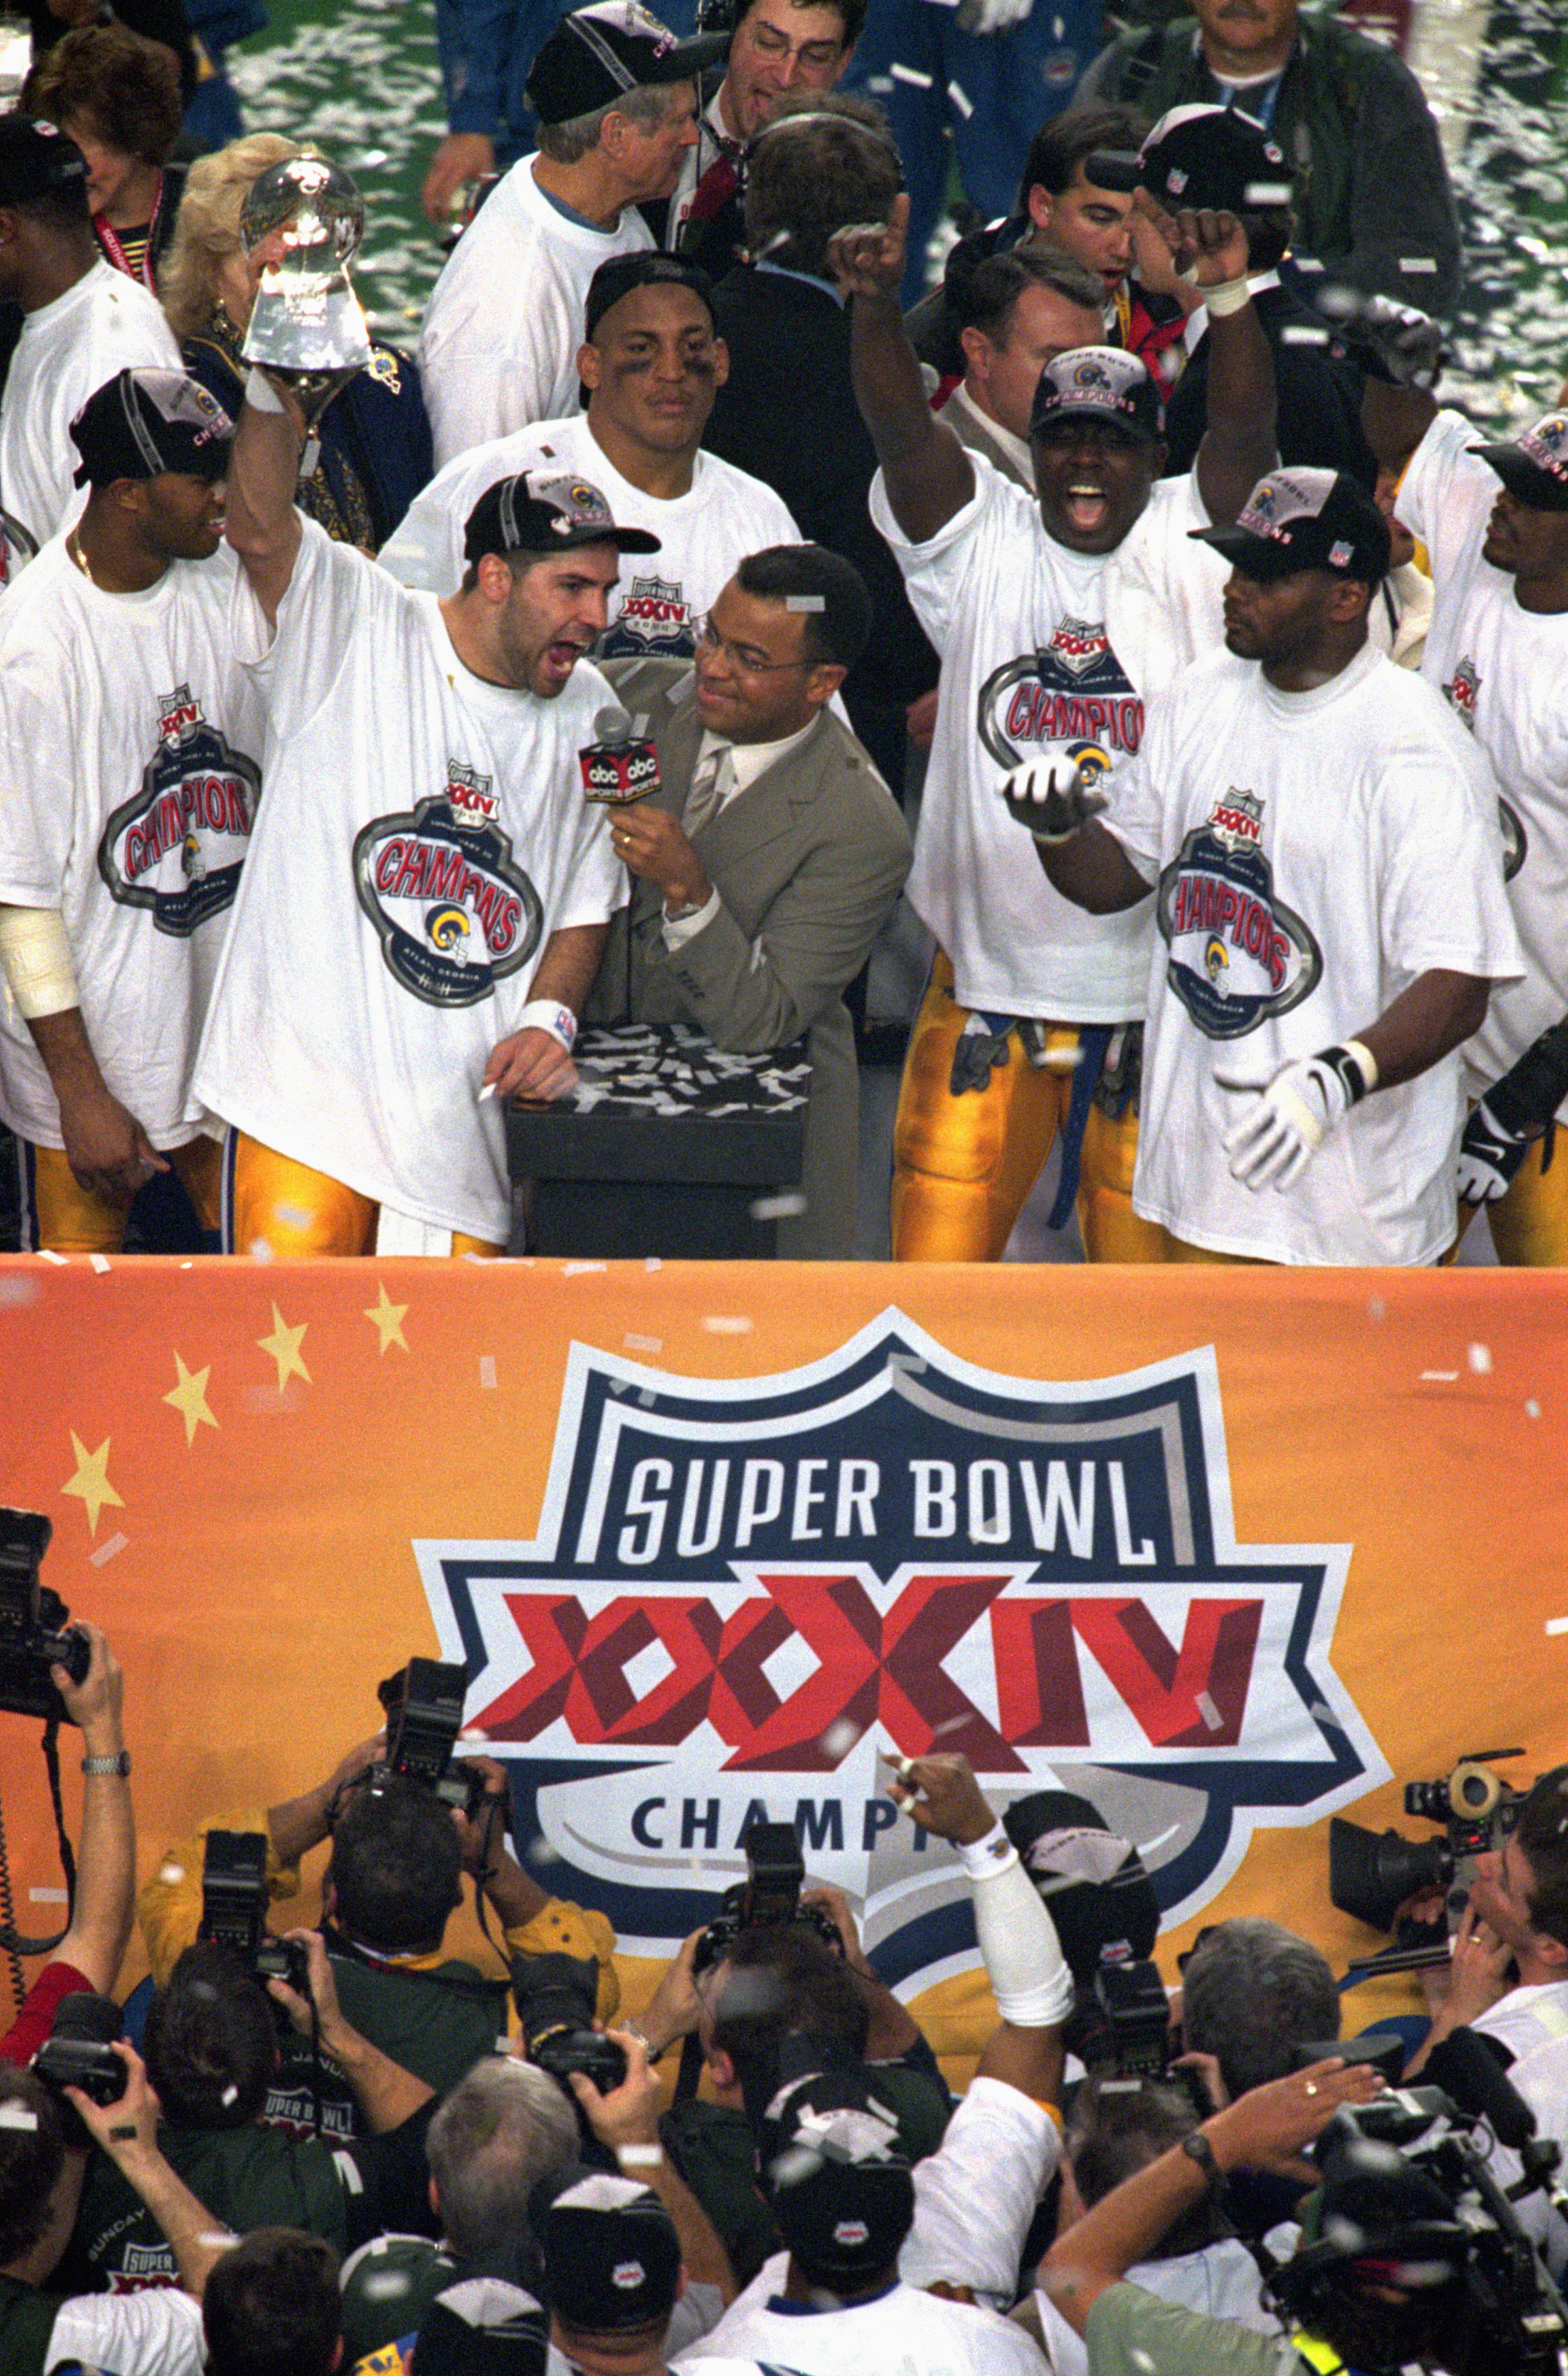 ATLANTA - JANUARY 30:  Quarterback Kurt Warner #13 of the St. Louis Rams celebrates as he hoist up the Lombardi trophy after defeating the Tennessee Titans 23-16 in Super Bowl XXXIV at the Georgia Dome on January 30, 2000 in Atlanta, Georgia.  (Photo by B